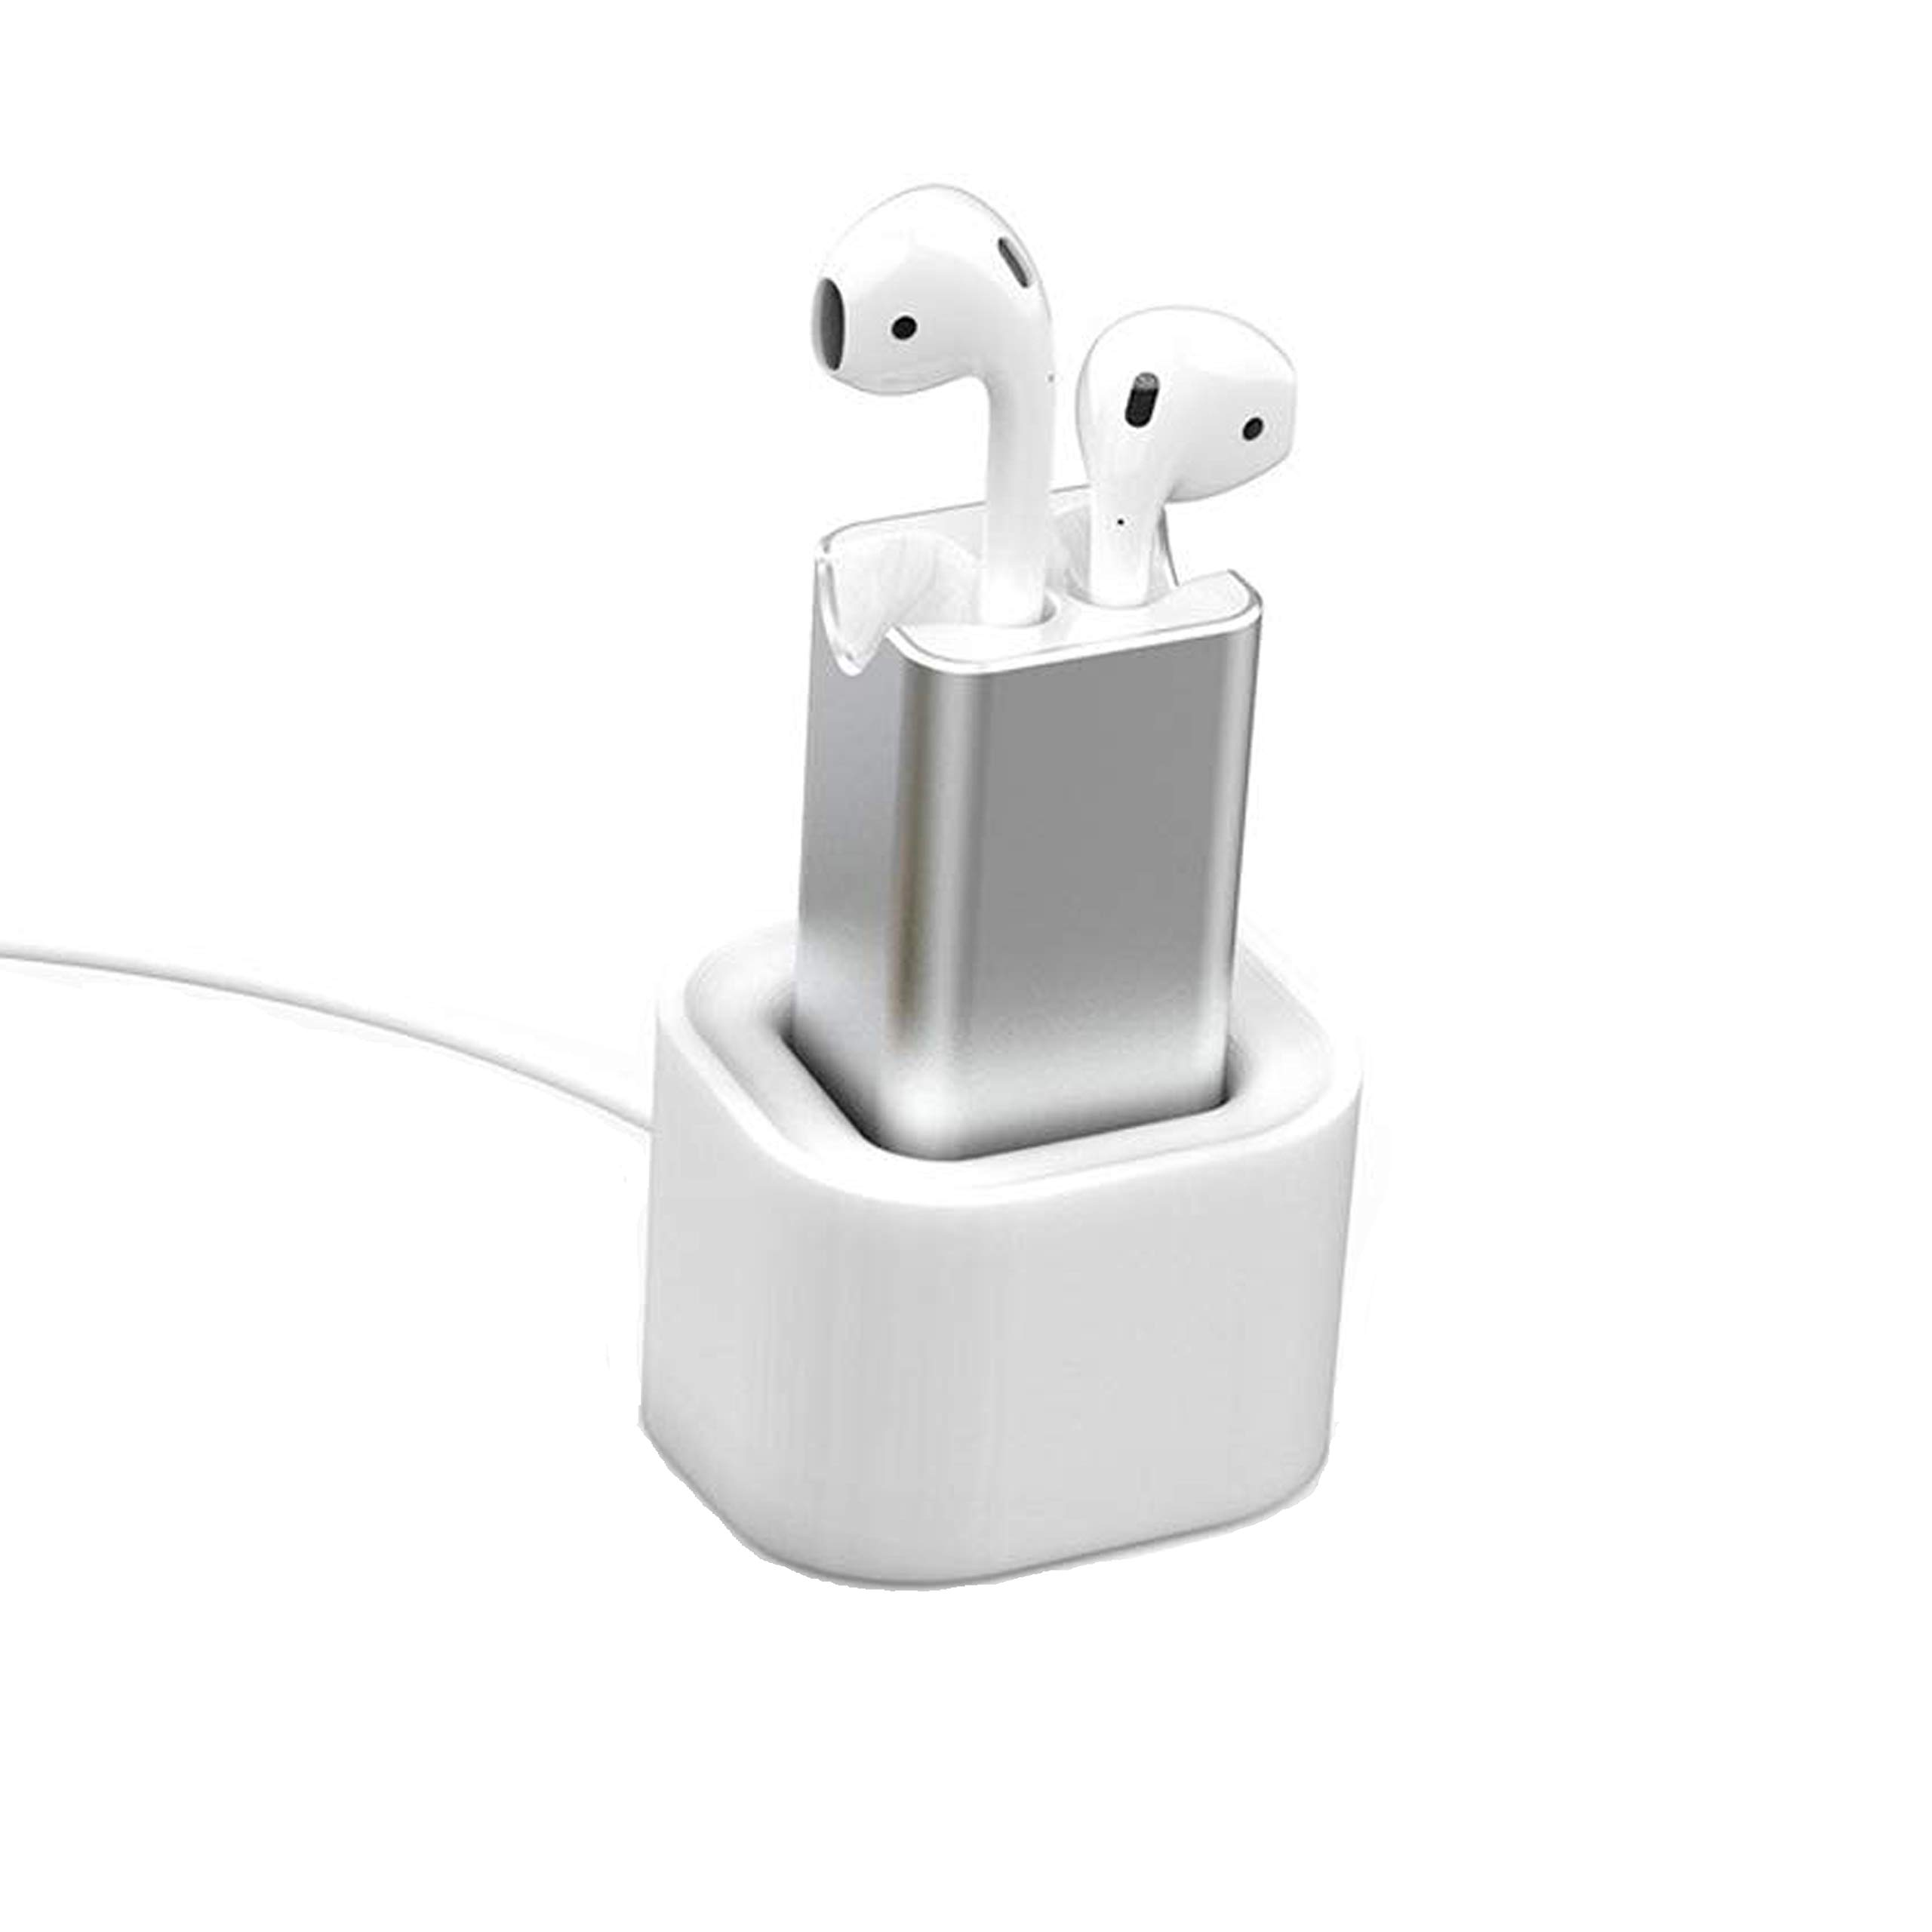 for Home Car Compatible with Airpod 1 /& 2 Generation Earbuds. Office COSOOS Charging Case Replacement Charging Station for Aipods Backup Desktop Fast Charger Adapter with Stand Holder